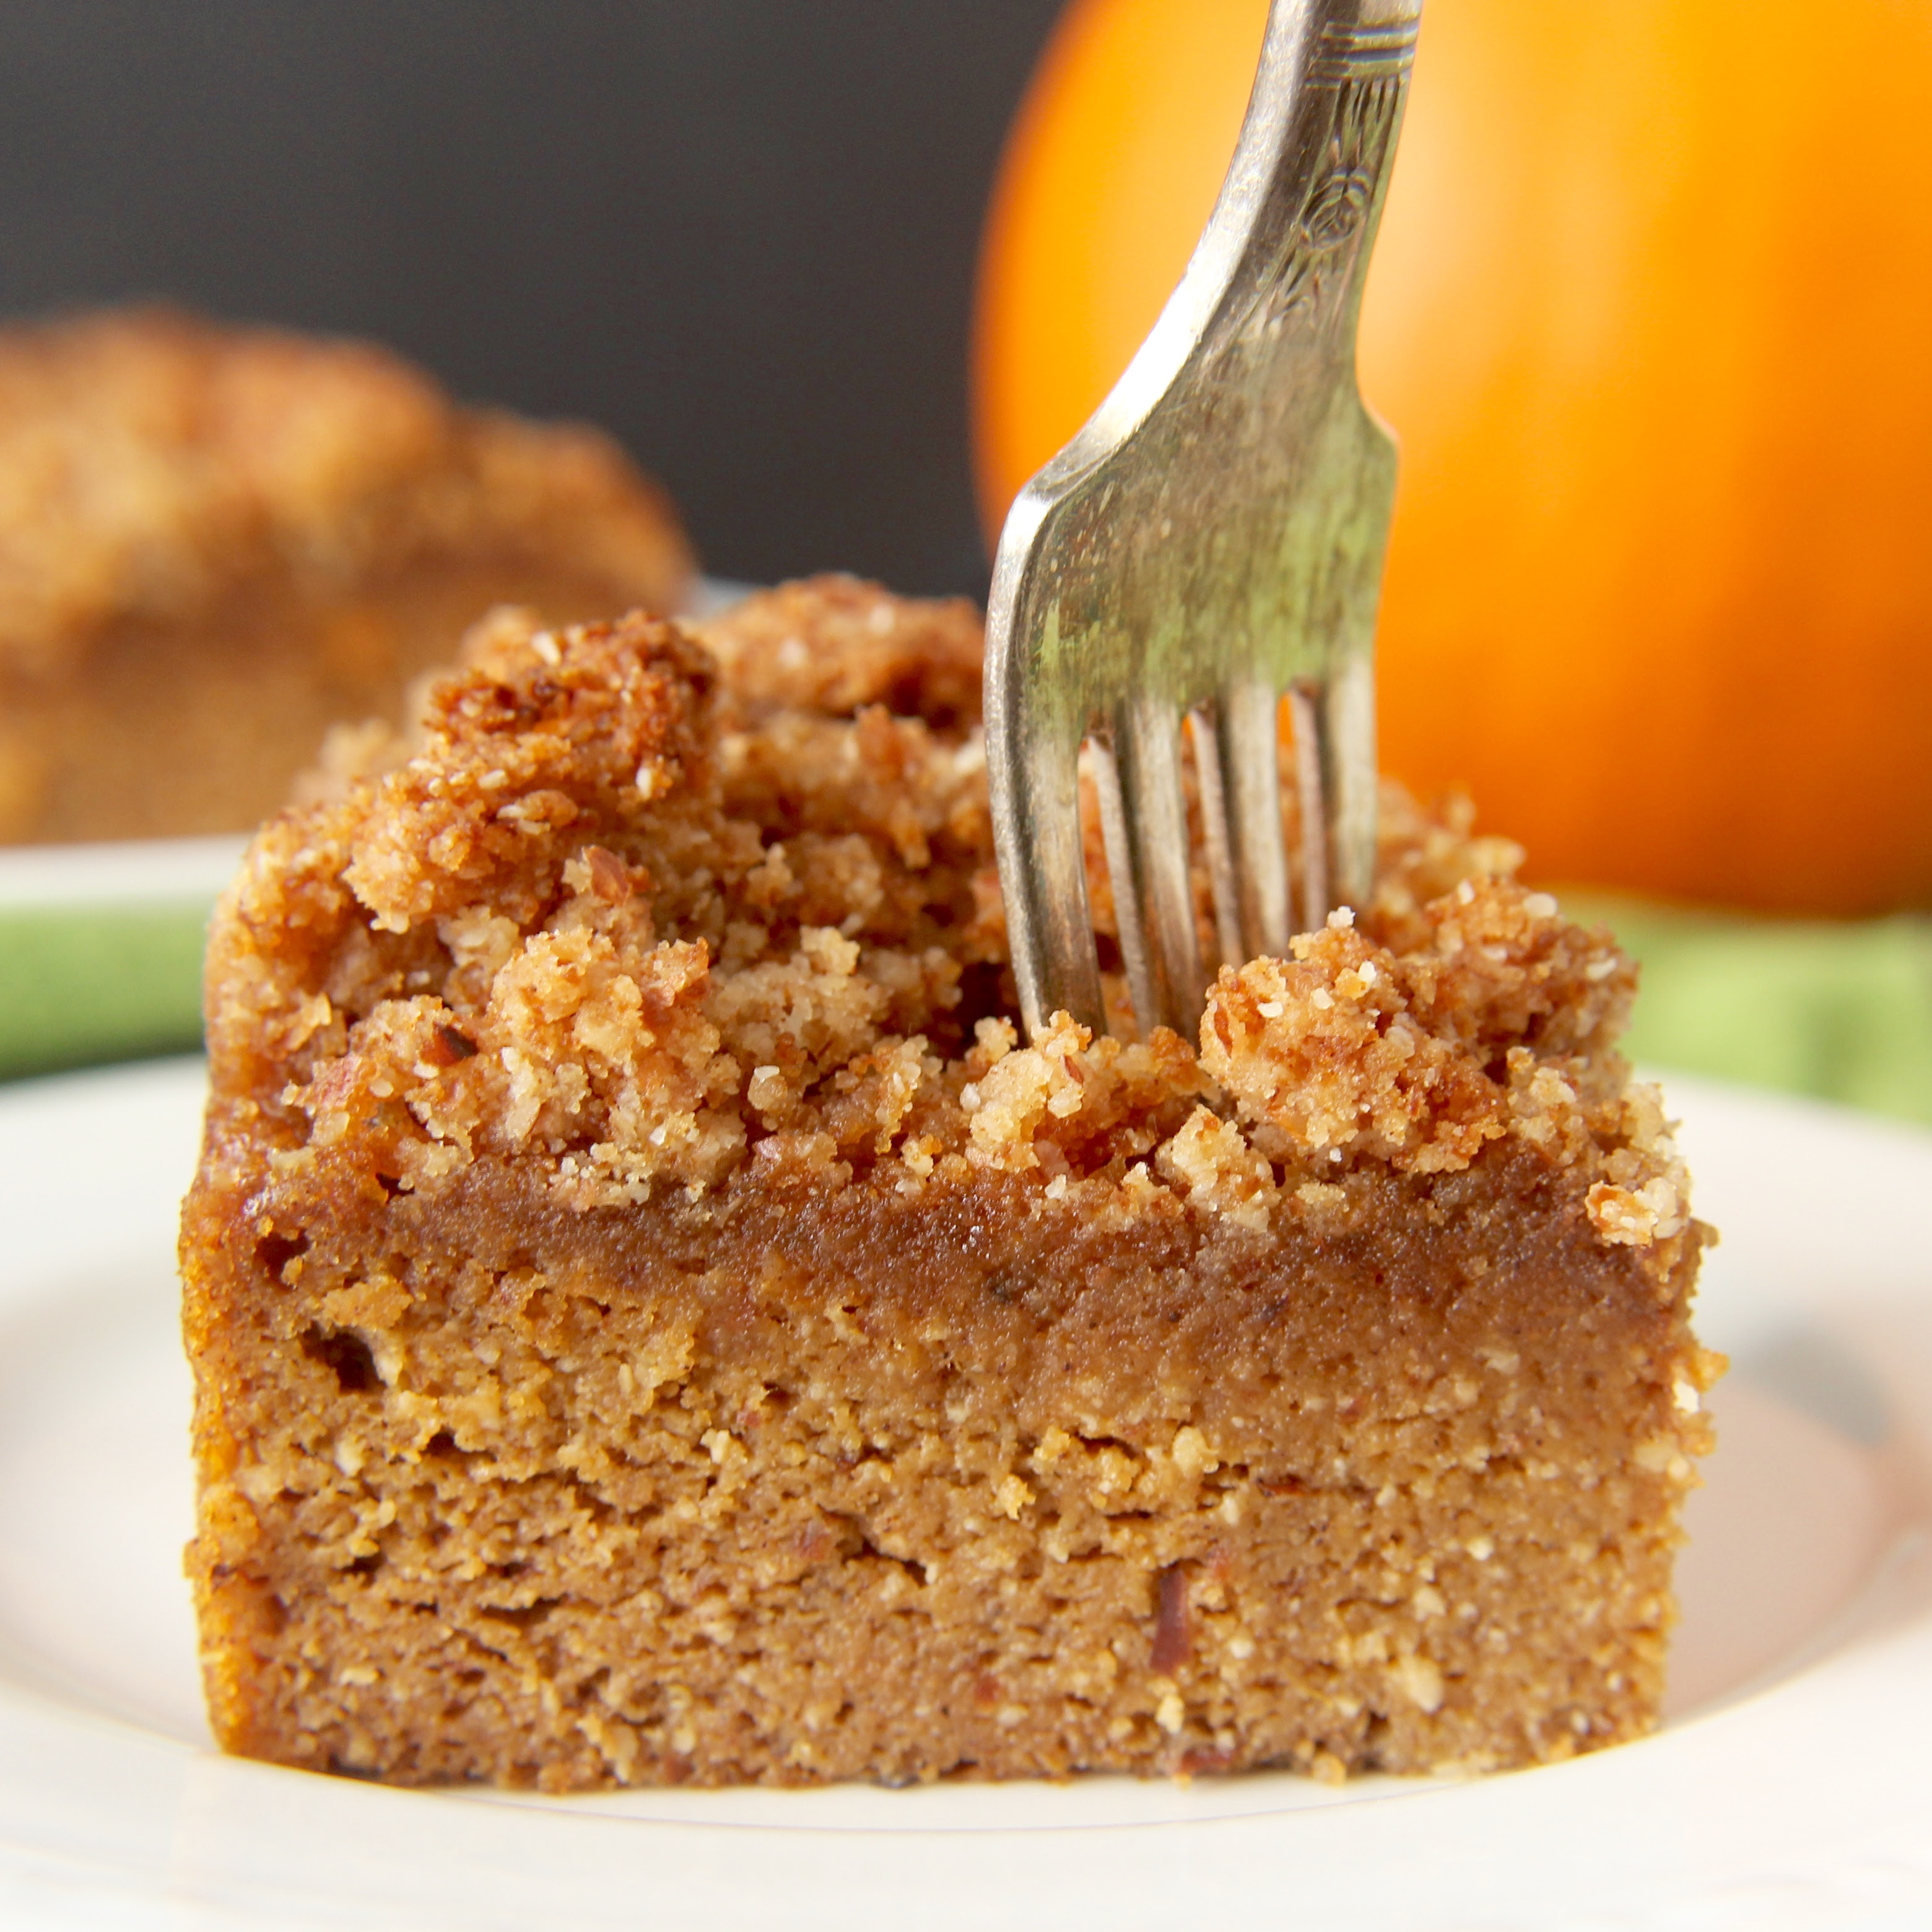 Paleo Pumpkin Coffee Cake - Jay's Baking Me Crazy